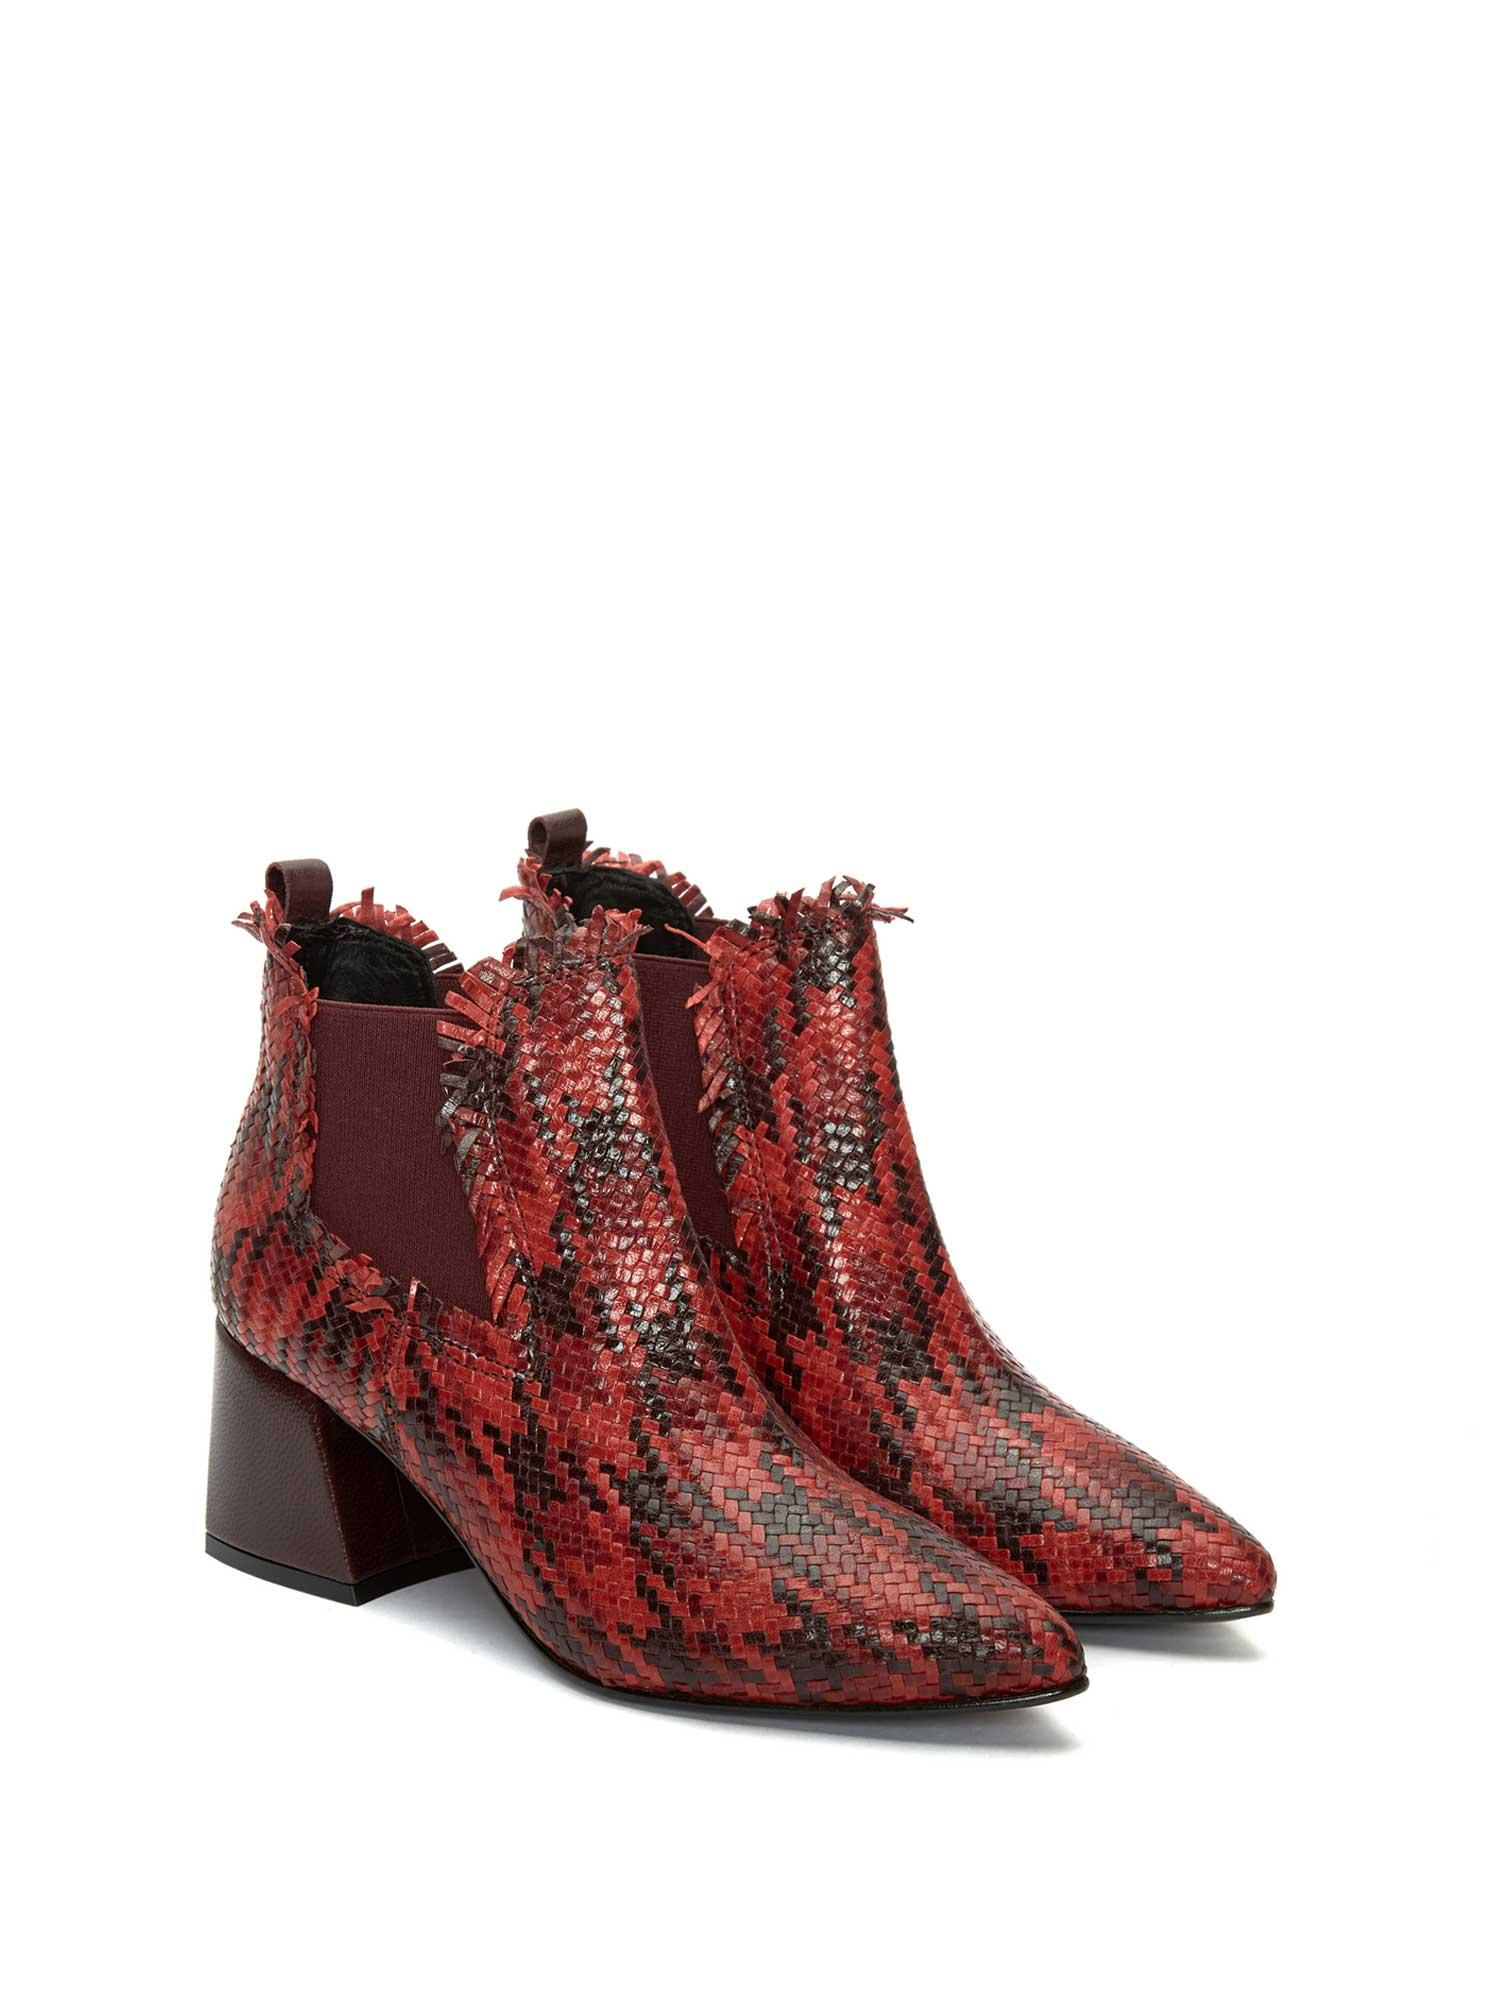 LIEJA TRZ PATA DE GALLO C14 ANKLE BOOT